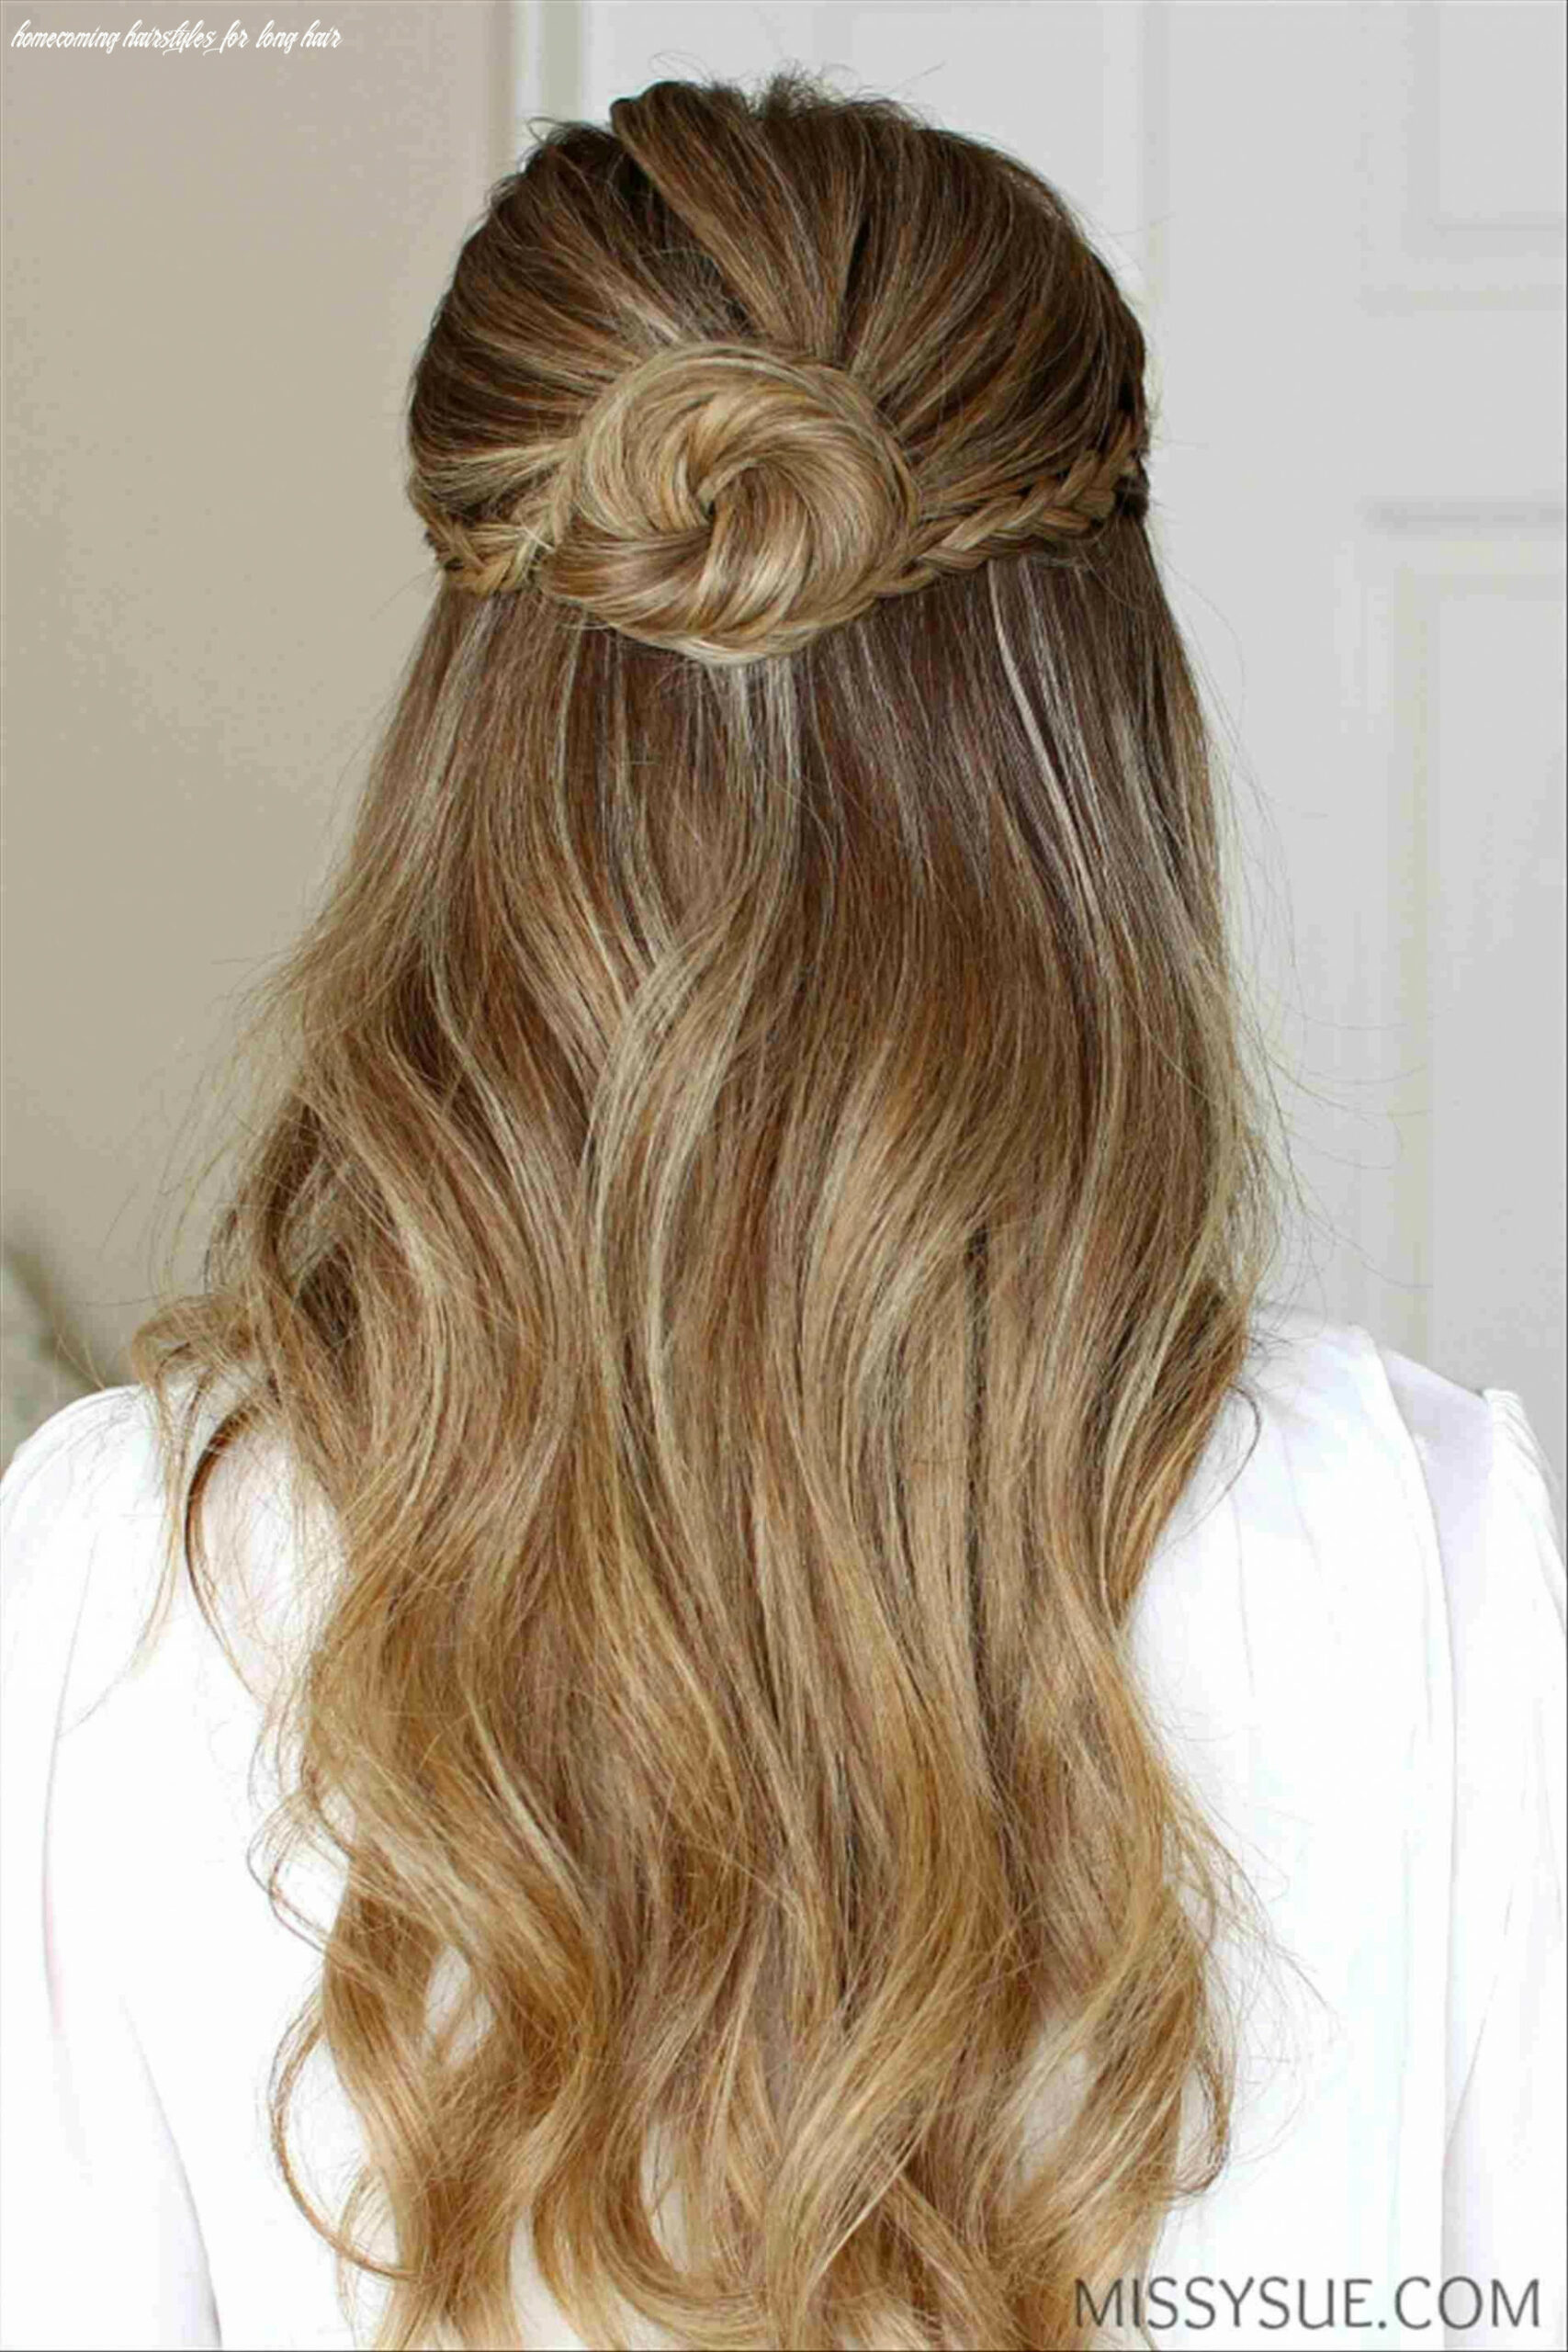 Simple long hairstyles for fine hair.. #longhairstylesforfinehair ...